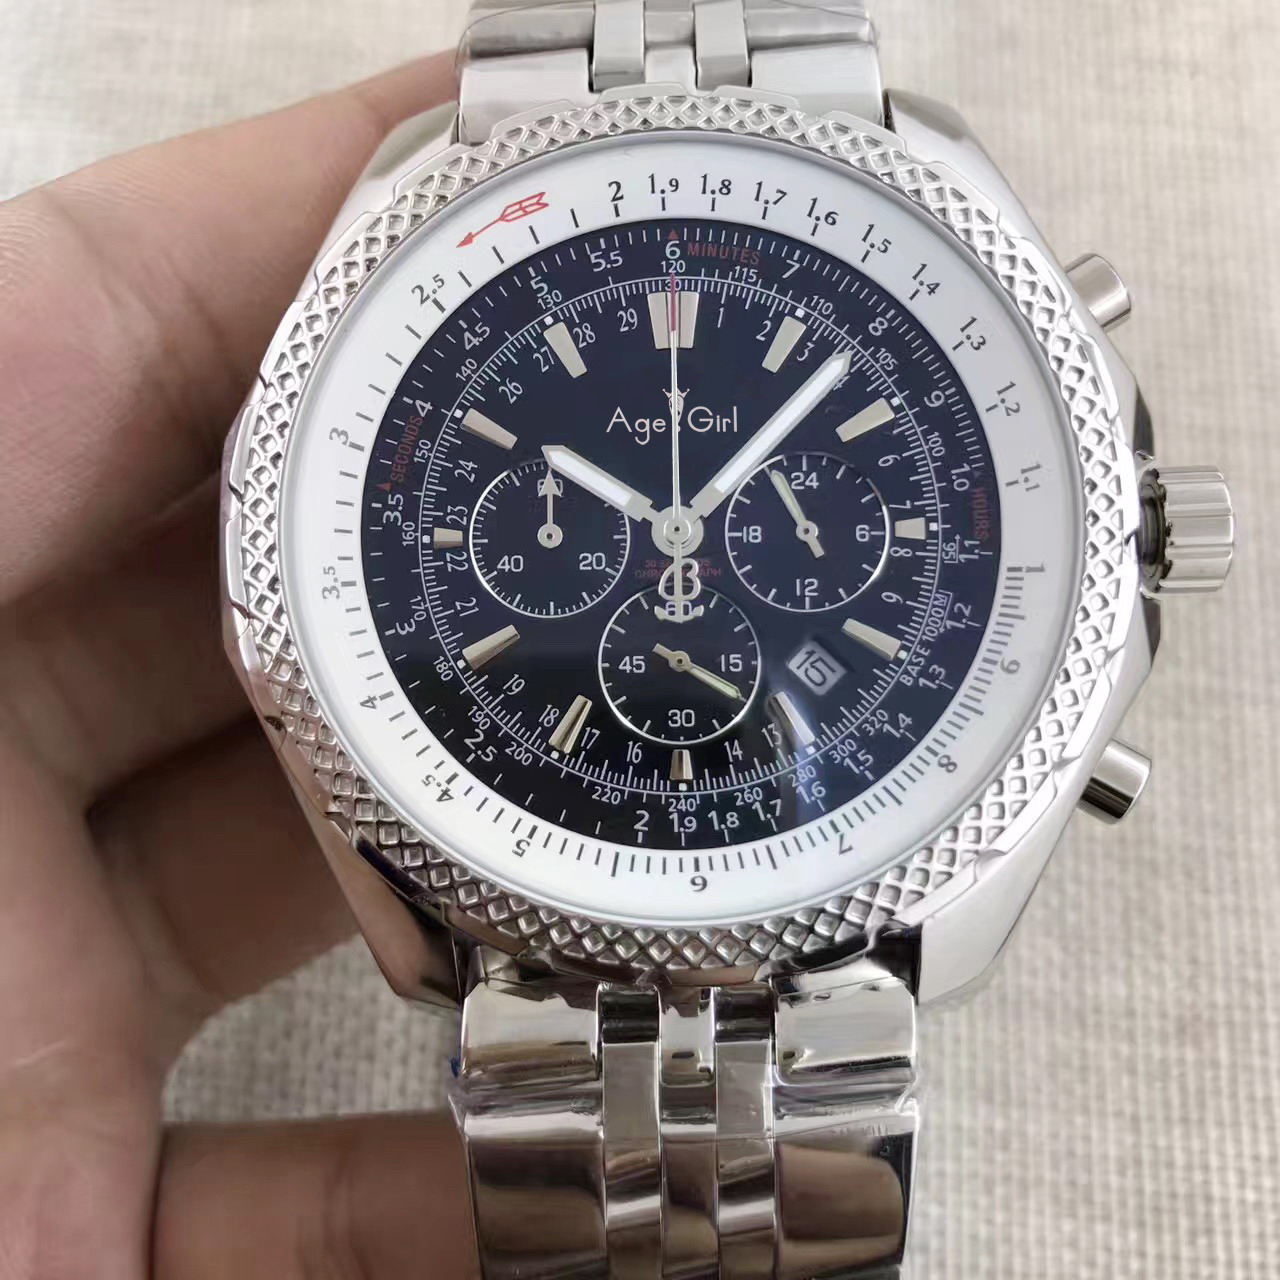 Luxury Brand New Men Chronograph Stopwatch Watch Black Blue White Leather Stainless Steel Sapphire Limited Watches AAA+